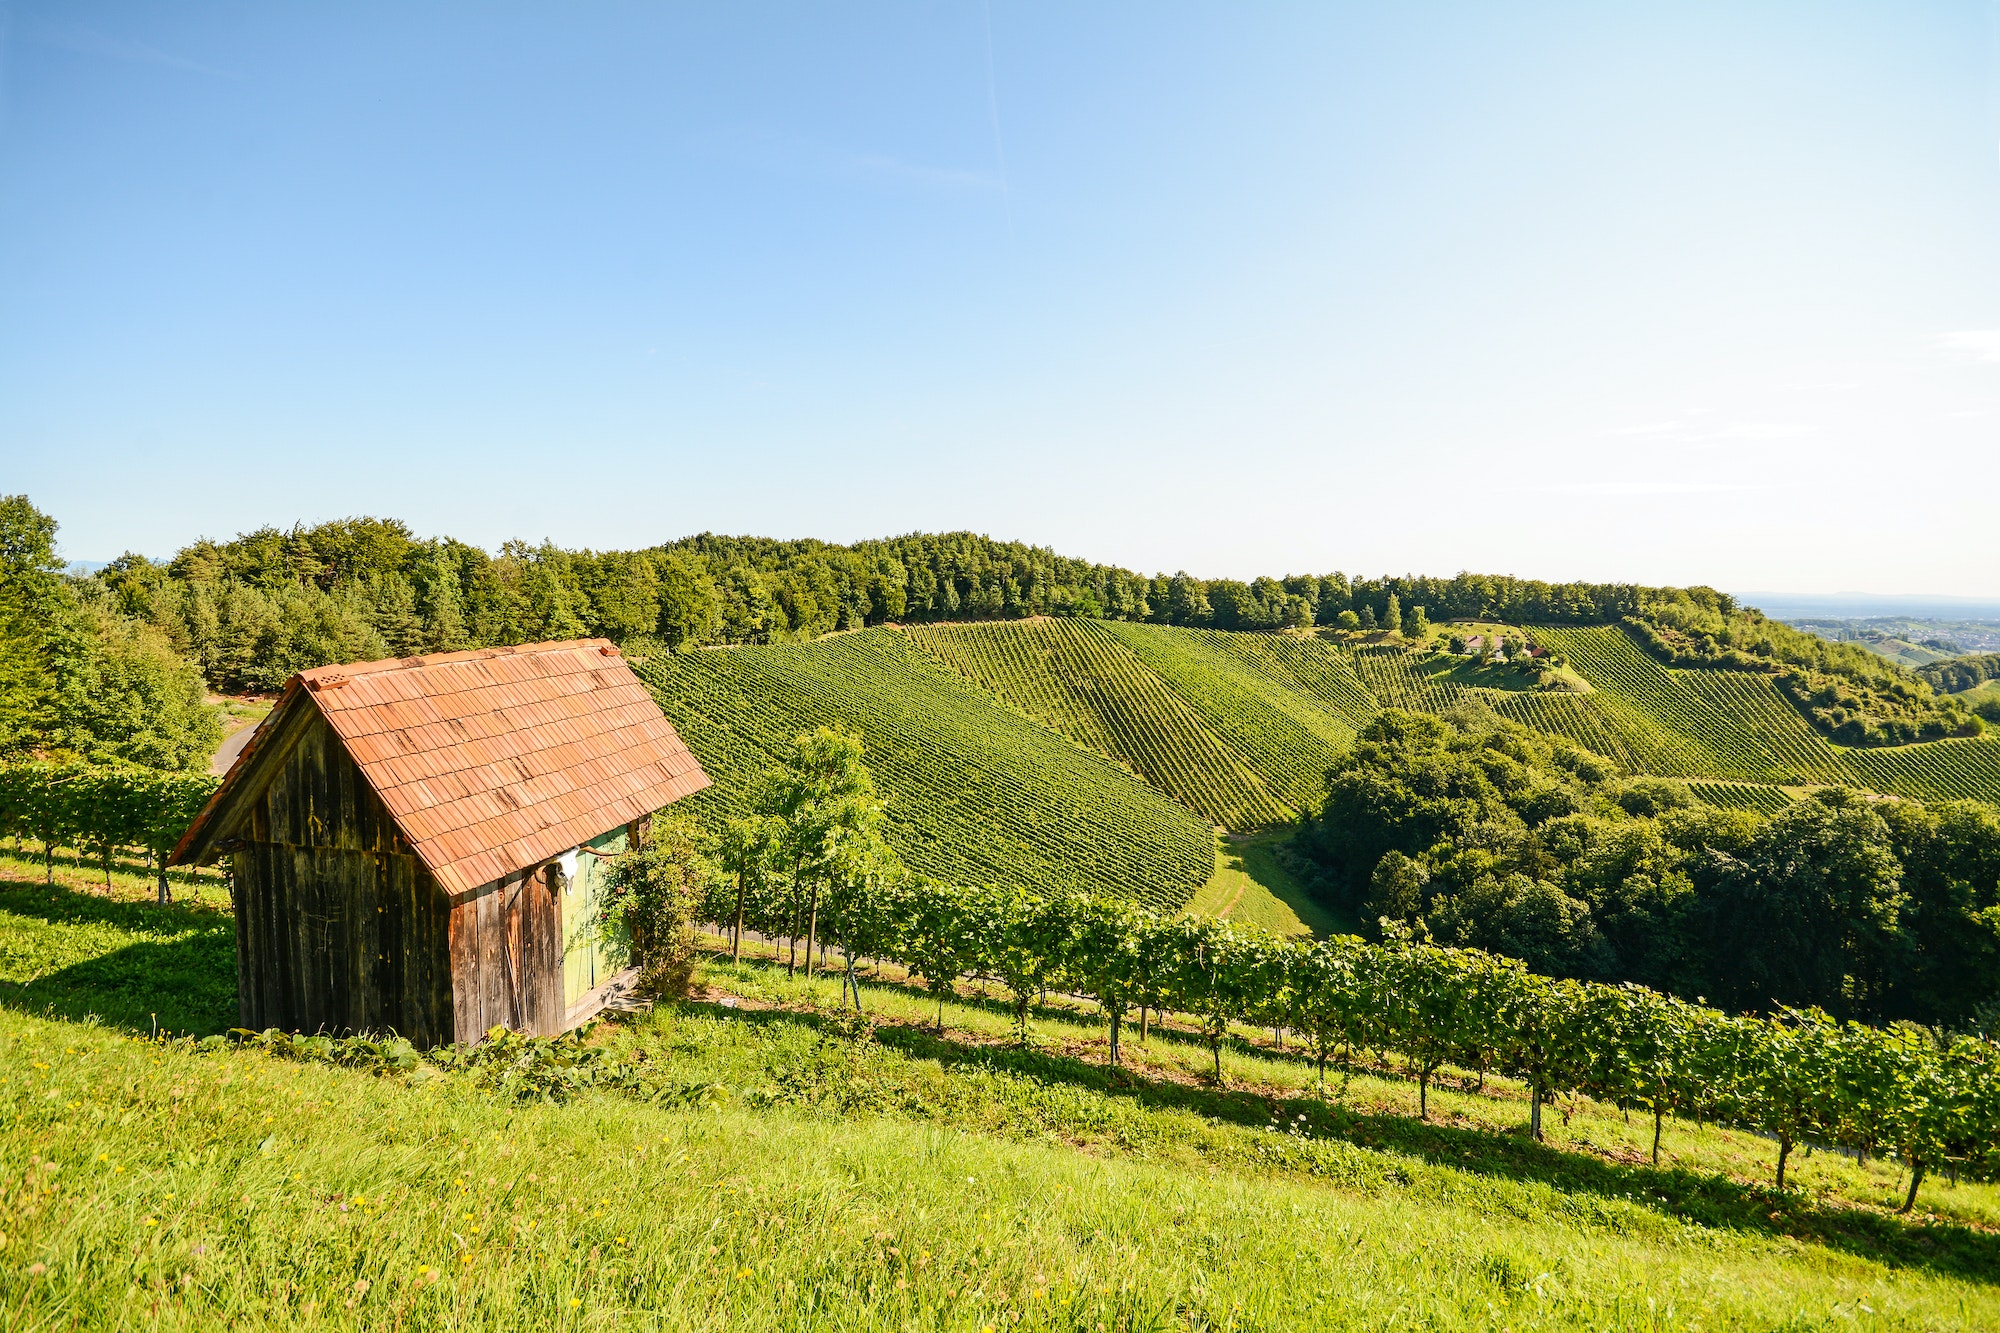 Burgenland is Austria's easternmost state, bordering Hungary and Slovakia.